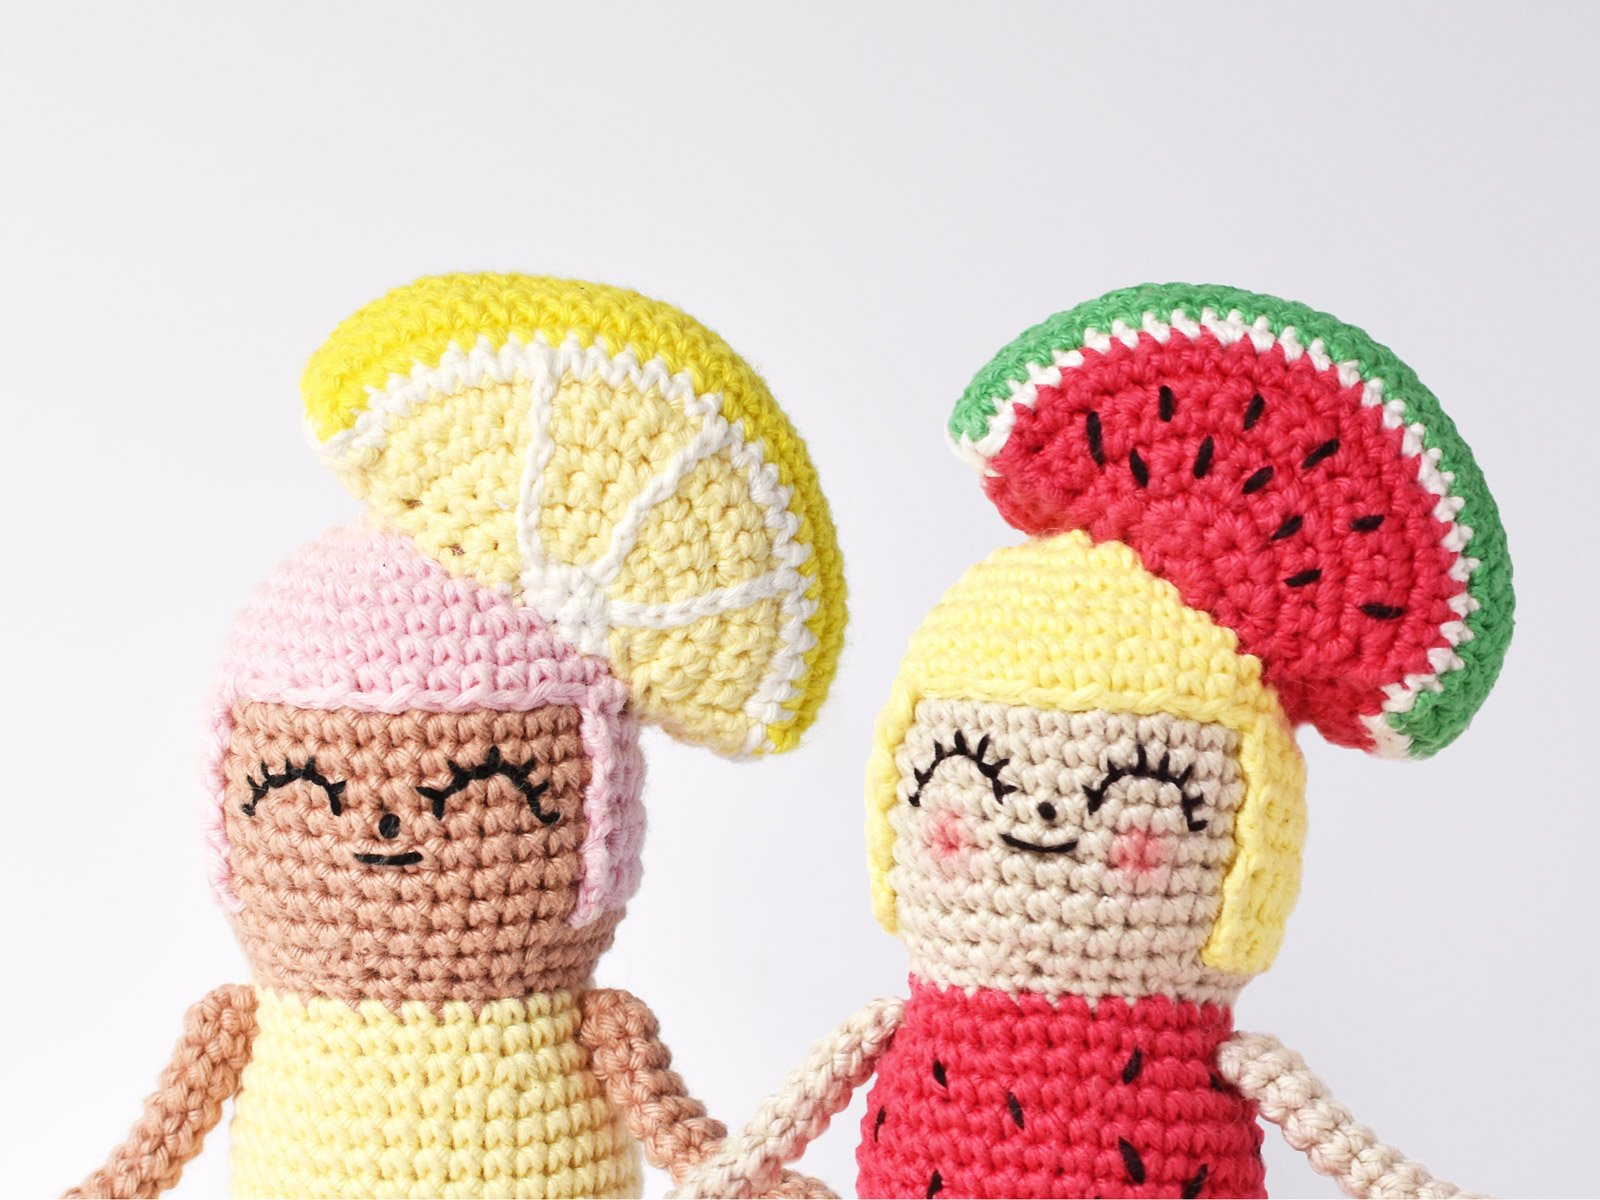 Close-up of crochet Lemon Girl doll and Watermelon Girl doll sitting side by side on a white background.